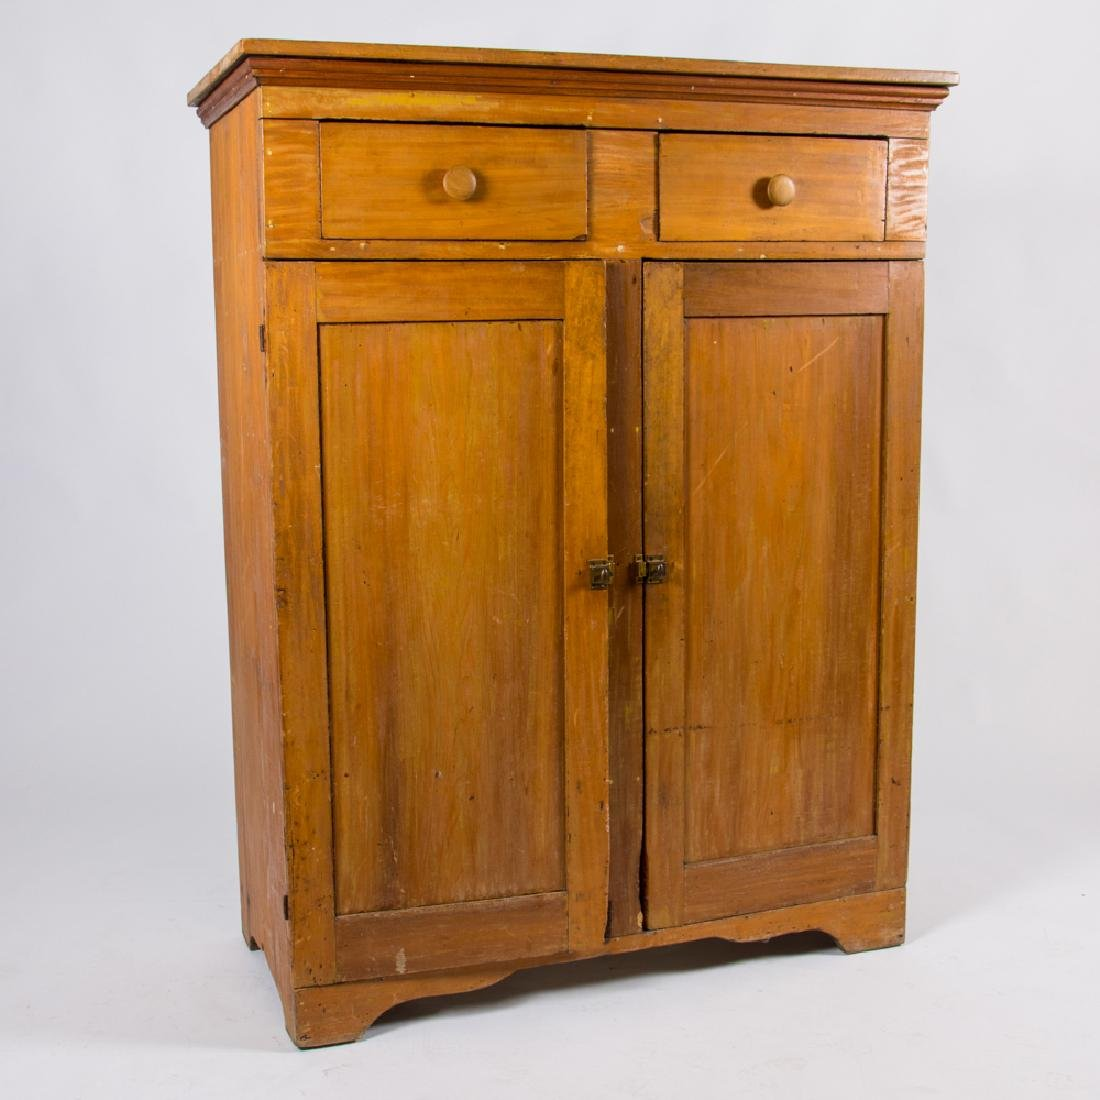 An American Pine Cupboard, 19th Century.